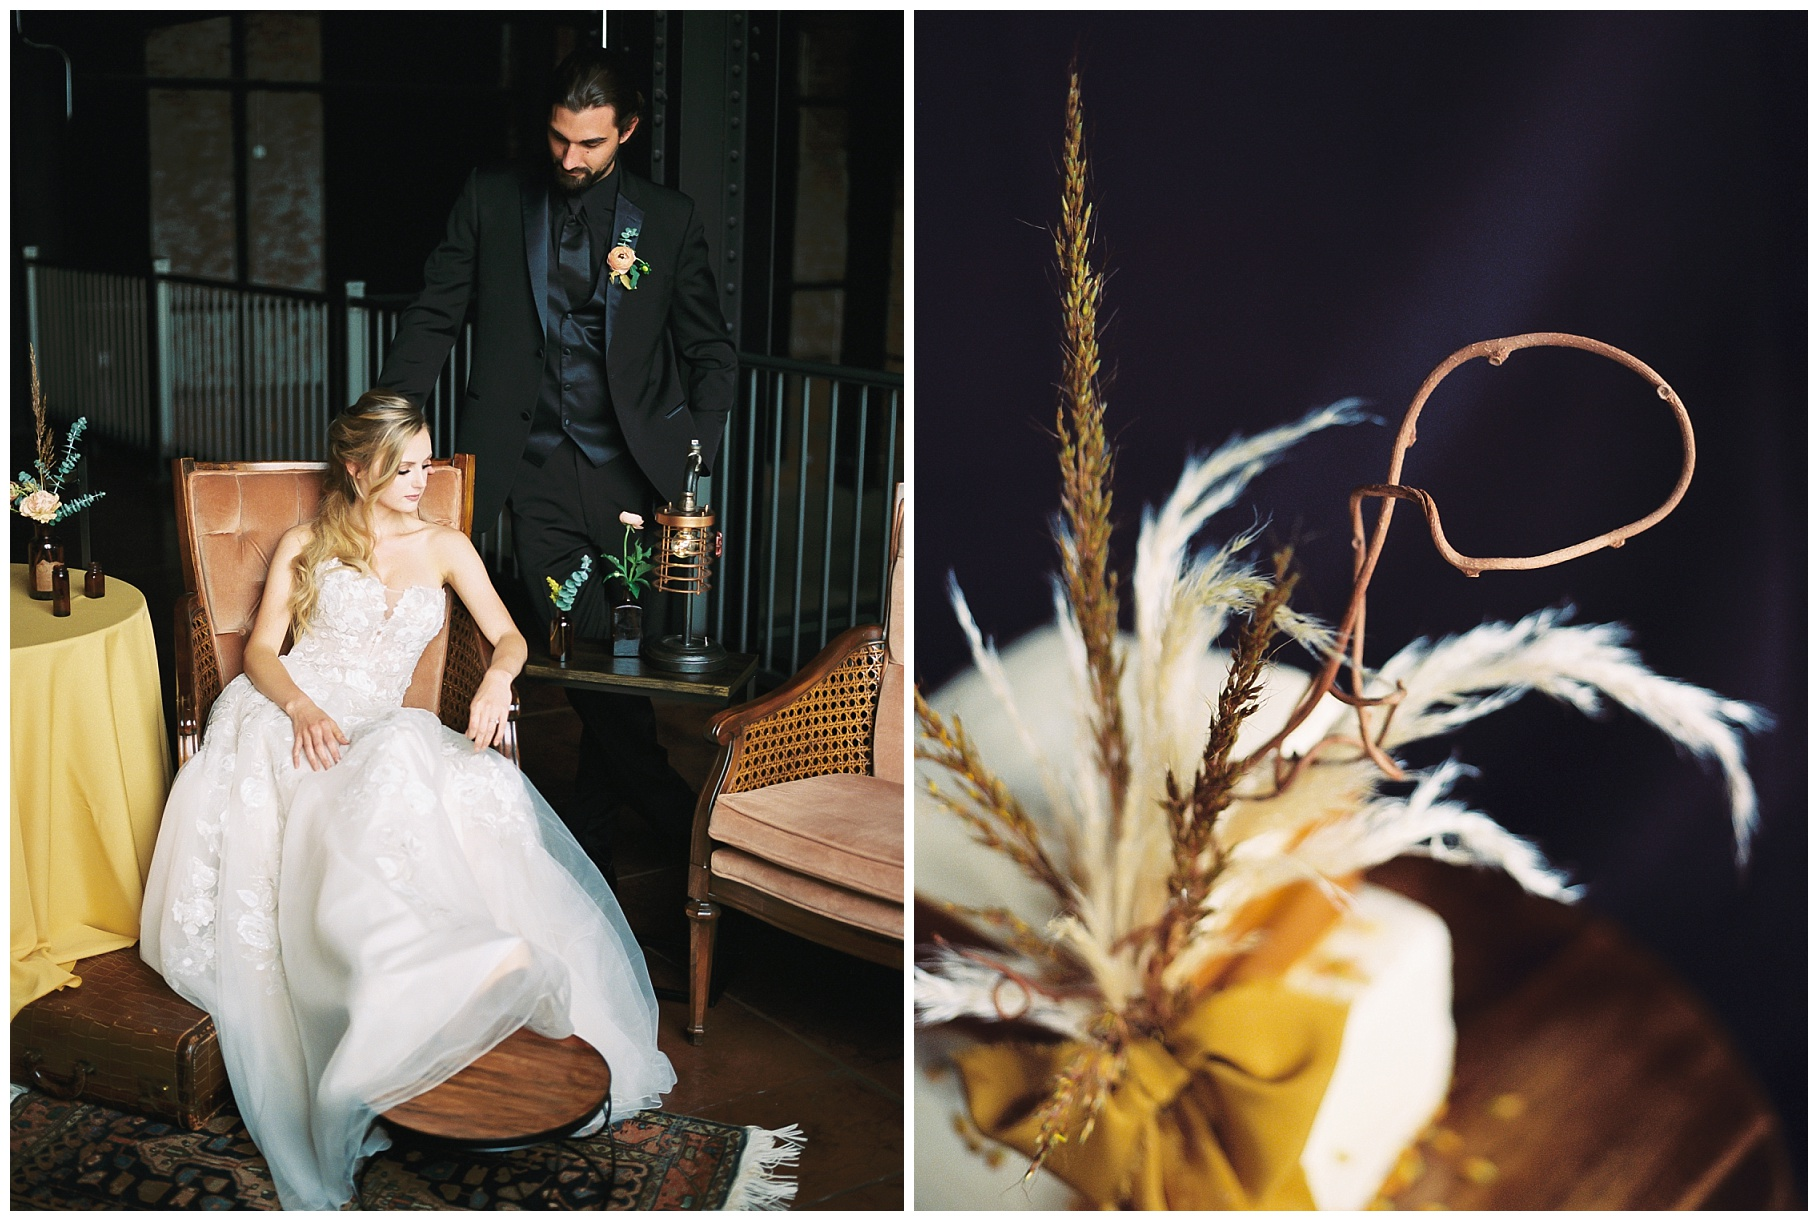 Urban Romance Wedding with Copper Accents at The Millbottom by Kelsi Kliethermes Photography Best Columbia Missouri Wedding Photographer_0031.jpg